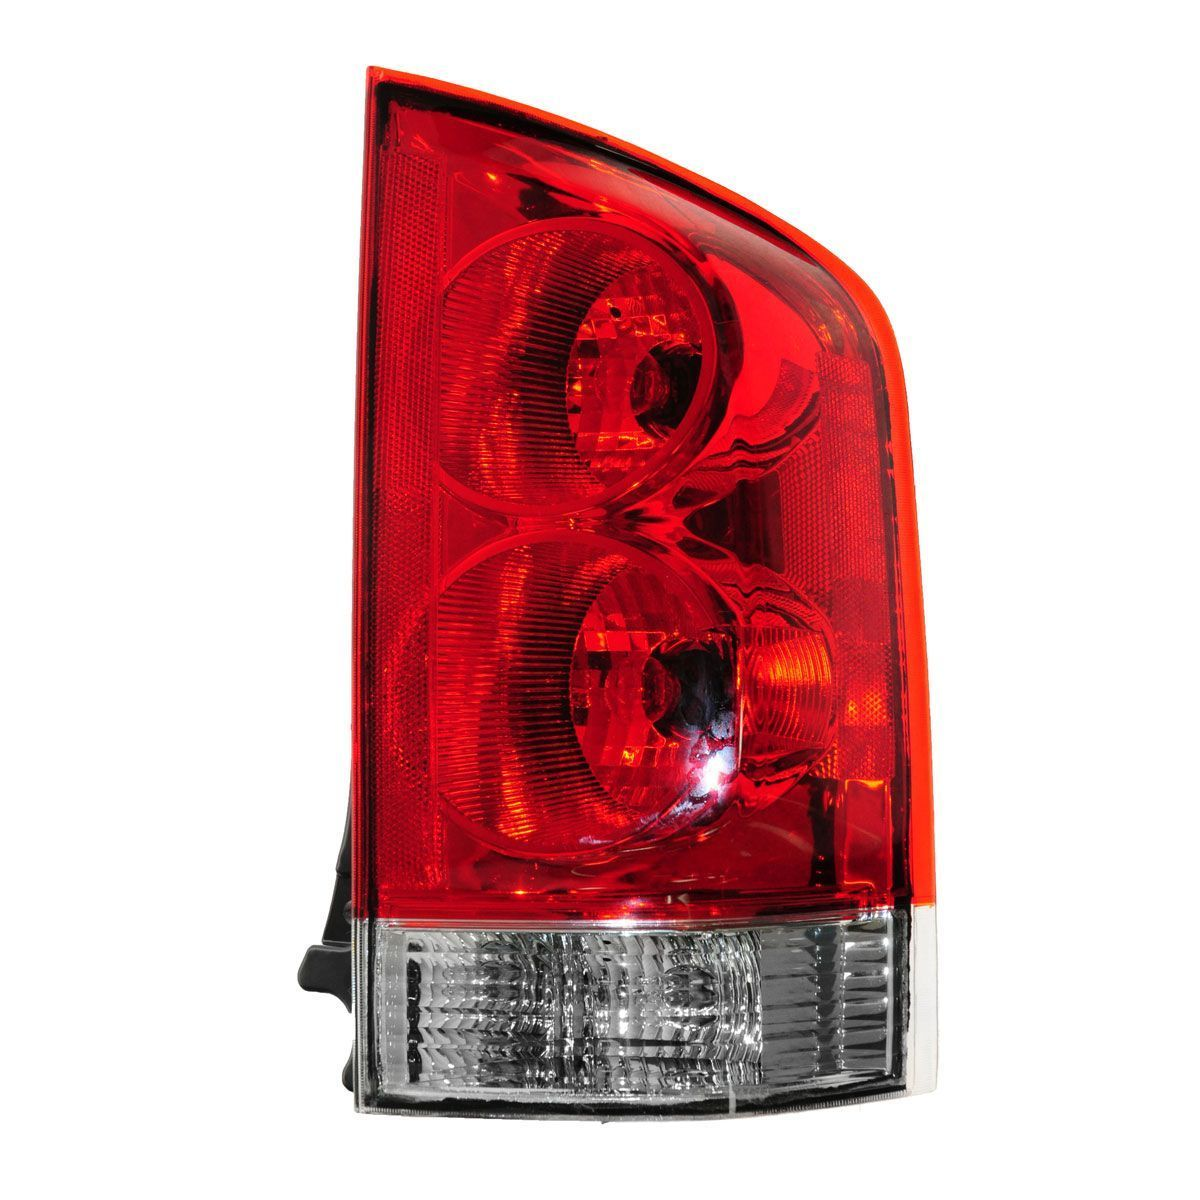 Nissan Armada 2010 2011 2012 2013 2014 2015 tail light right passenger